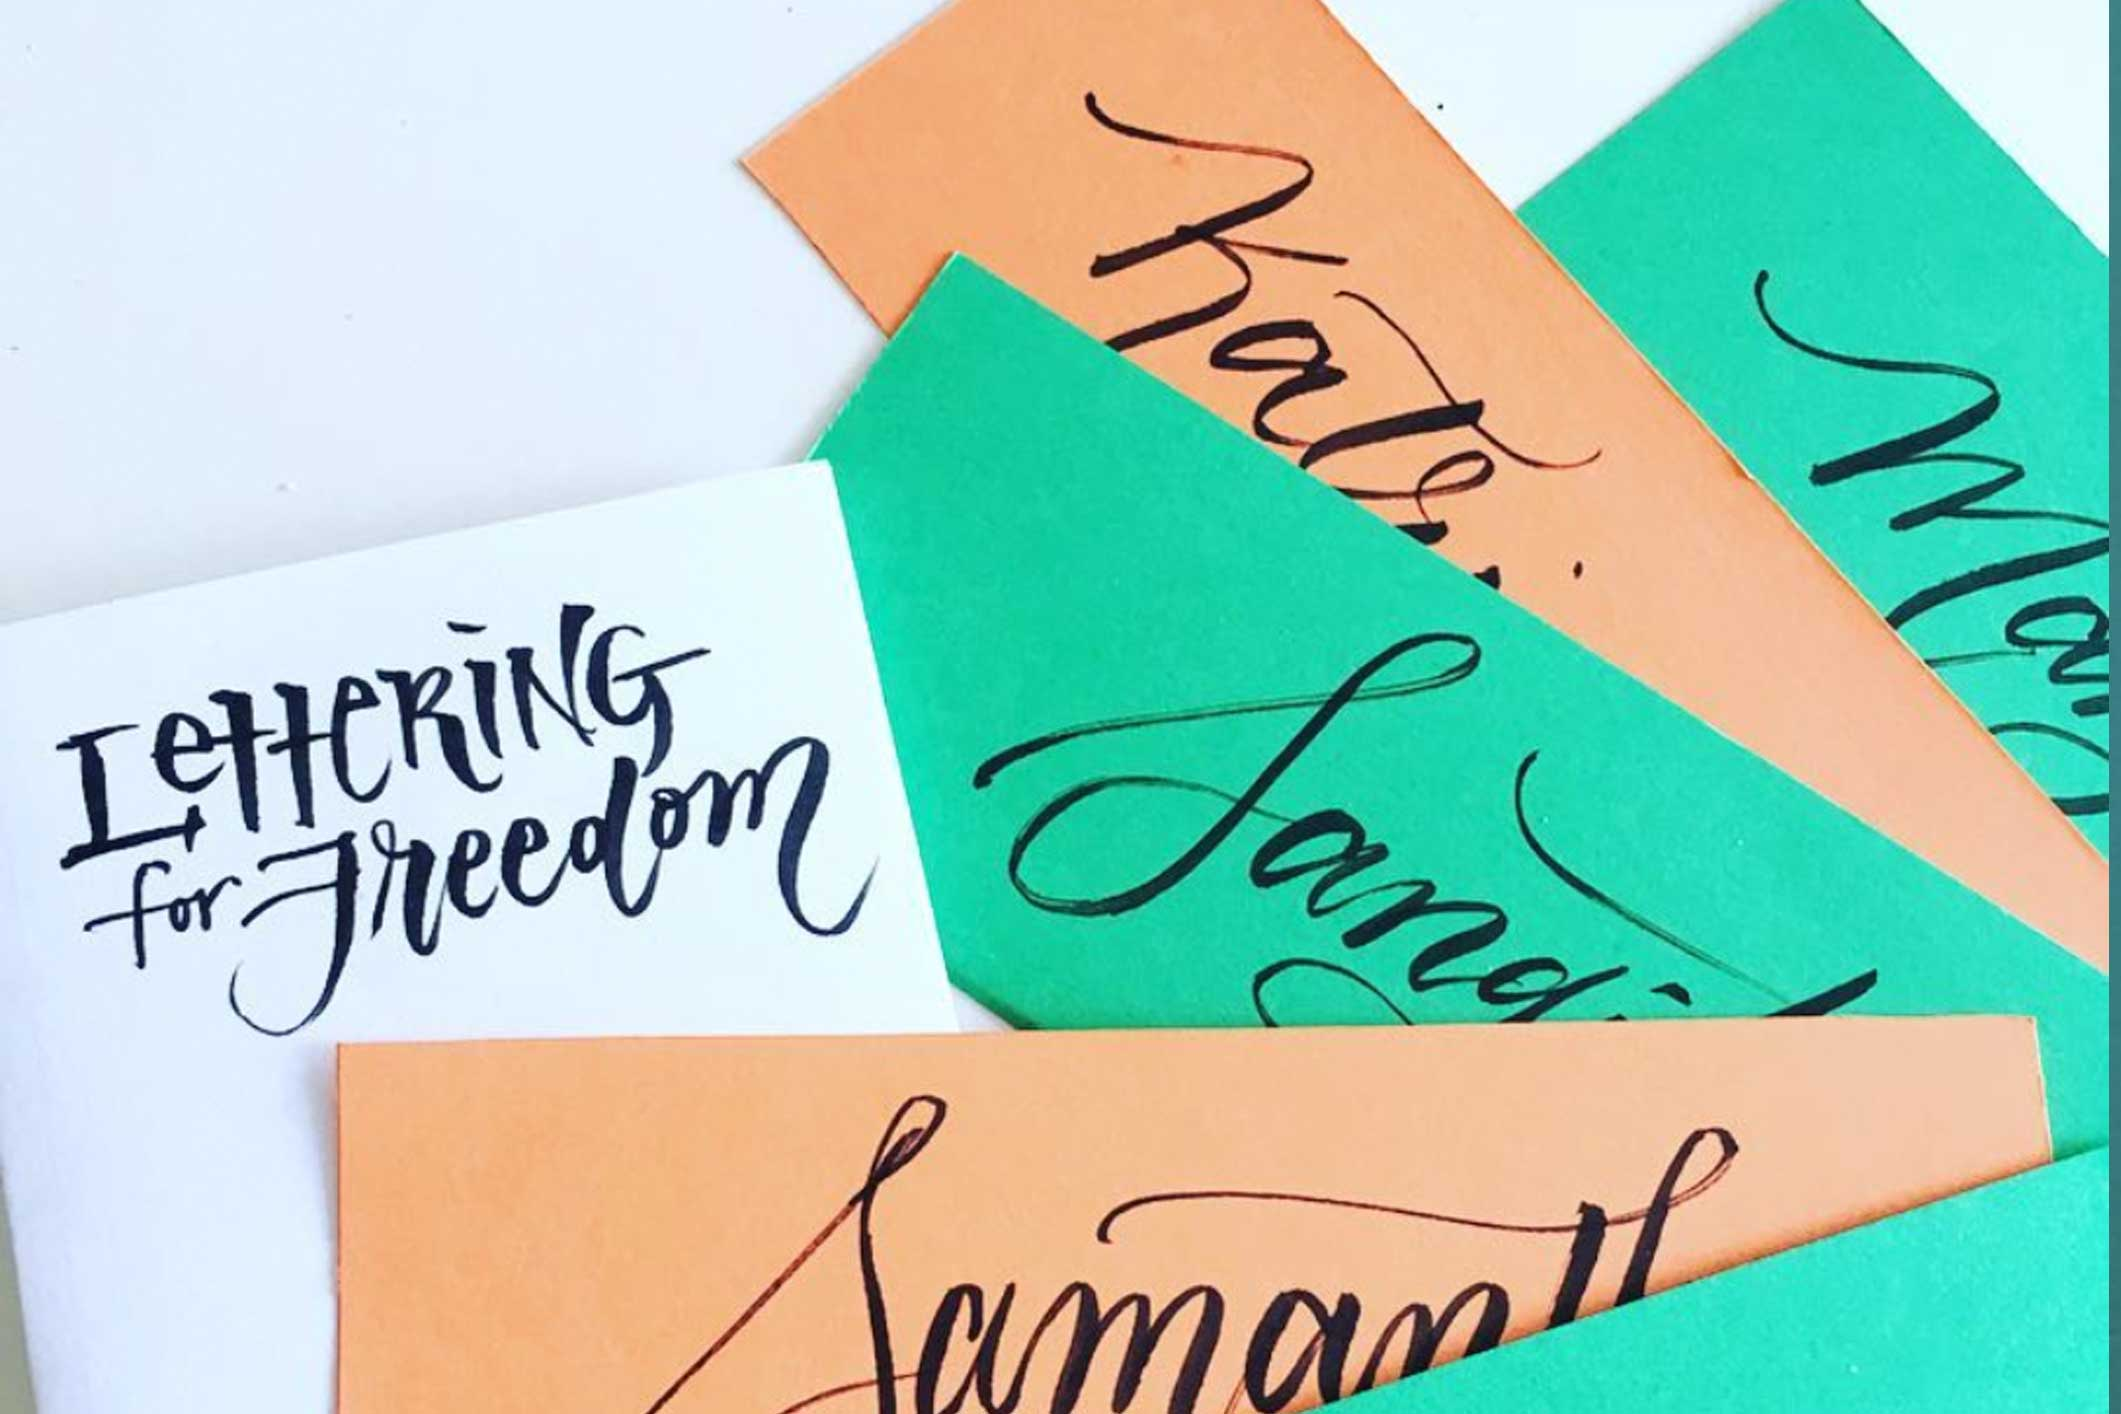 Special events - Interactive or personalized lettering at your special events to raise awareness and increase engagement.